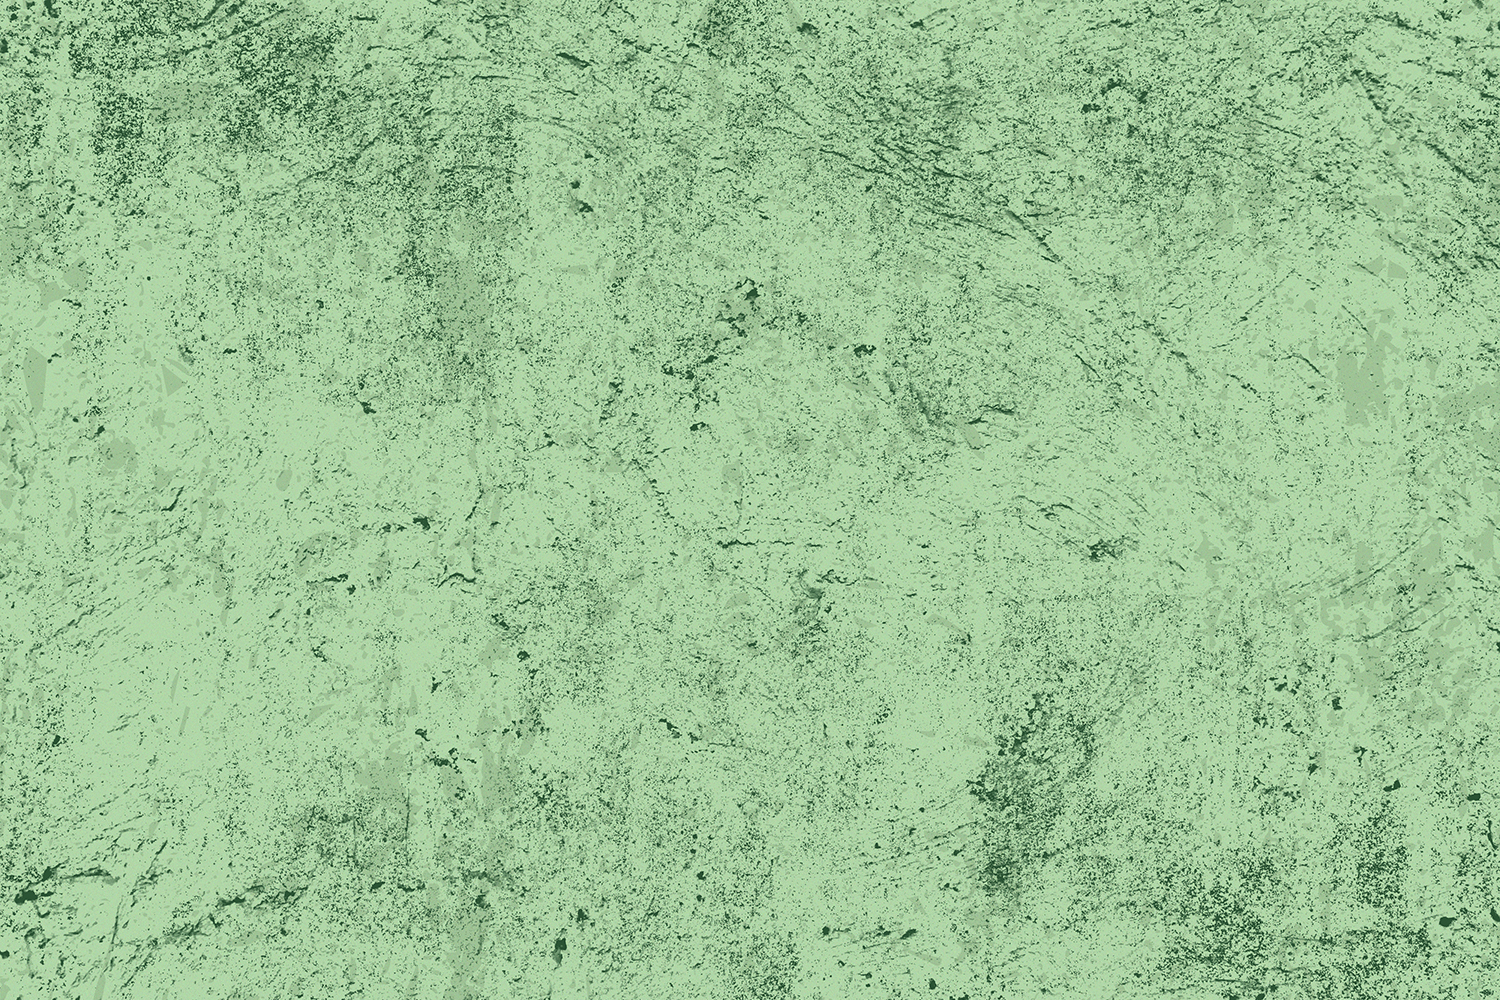 Grunge Texture Backgrounds example image 22